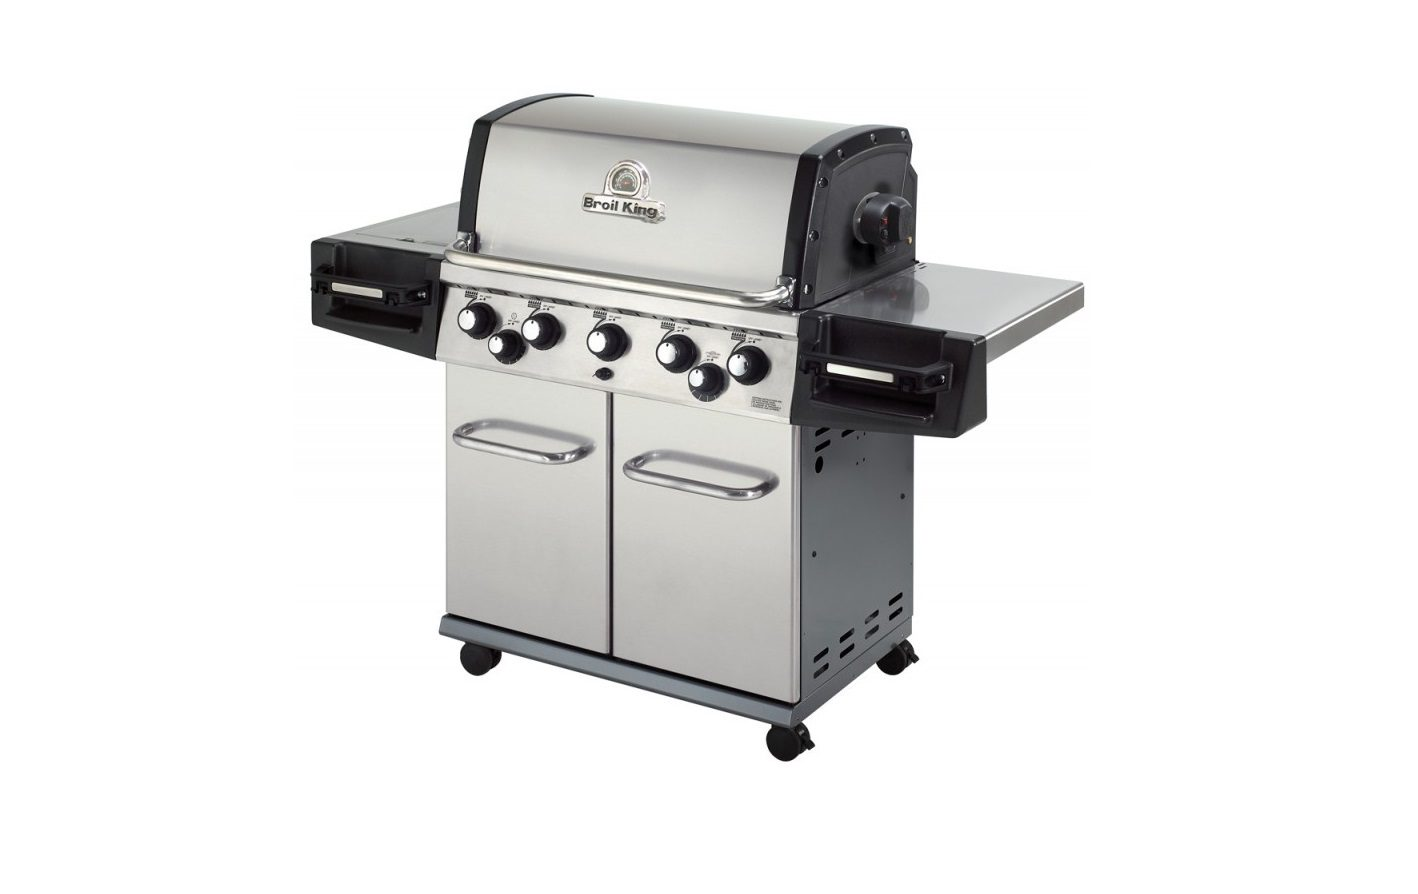 broil-king-regal-s590-pro-2016-model